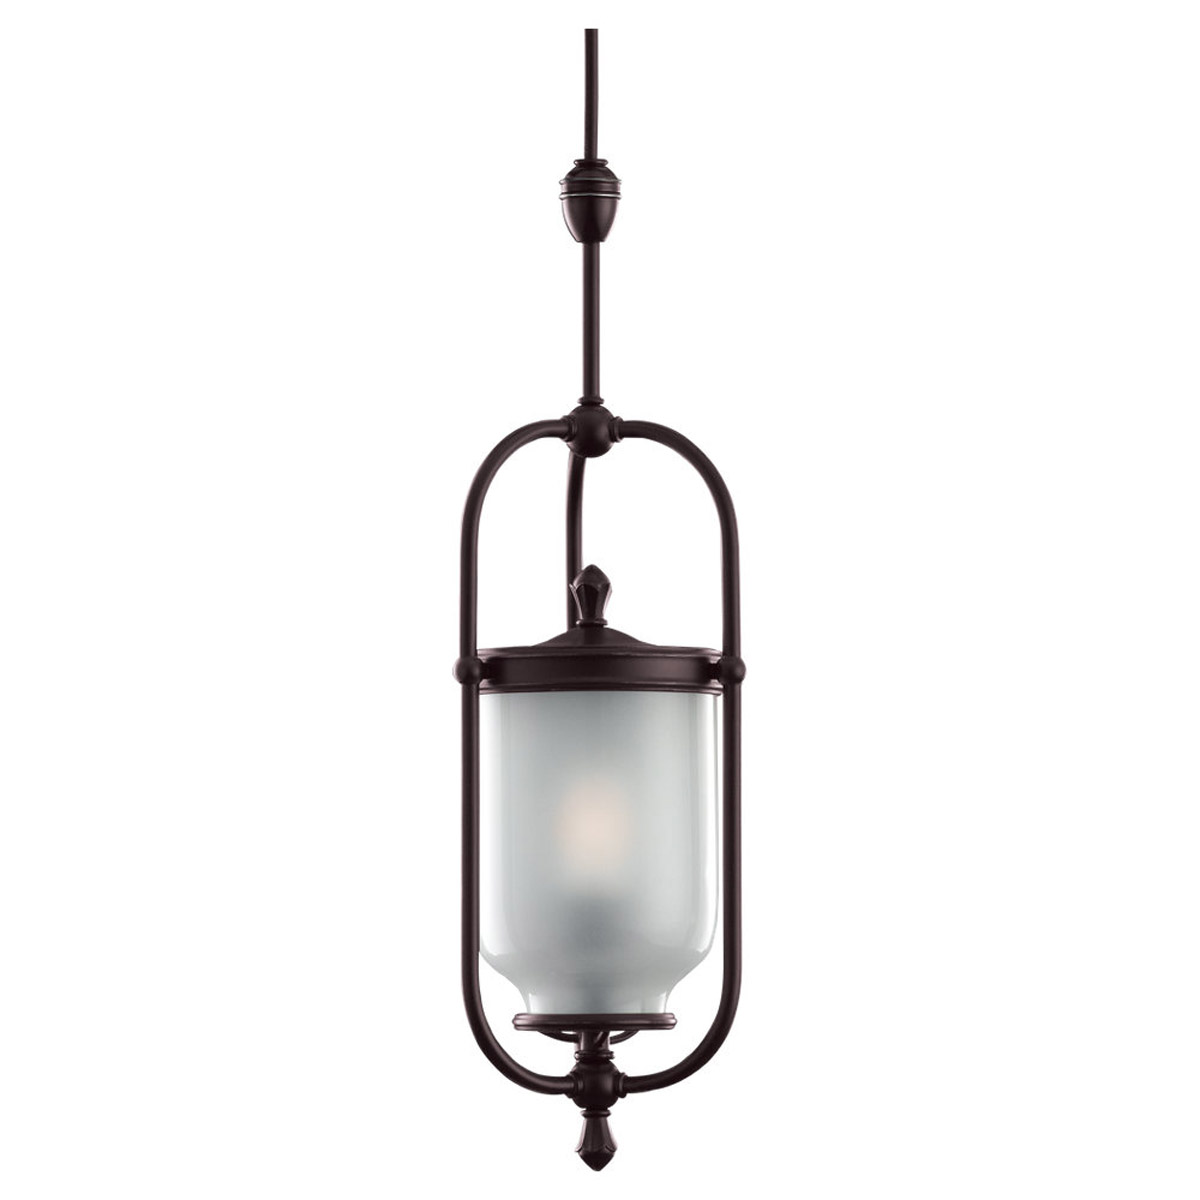 Sea Gull Lighting Wallace 1 + 1 Light Rail / Ceiling Pendant in Antique Bronze 94566-71